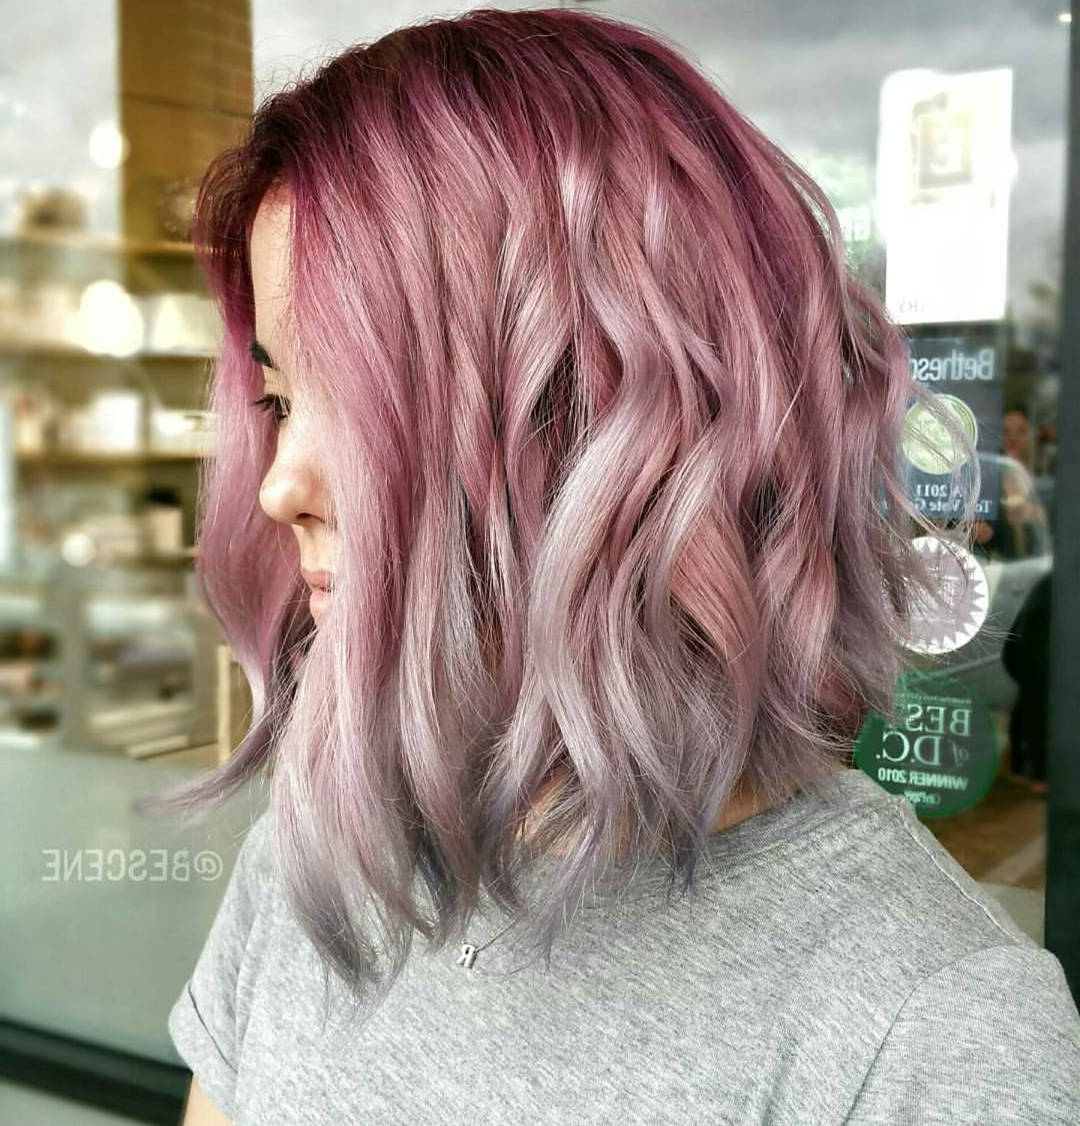 [%widely Used Medium Haircuts For Wavy Thick Hair Inside 30 Edgy Medium Length Haircuts For Thick Hair [october, 2018]|30 Edgy Medium Length Haircuts For Thick Hair [october, 2018] With Most Recently Released Medium Haircuts For Wavy Thick Hair%] (View 18 of 20)